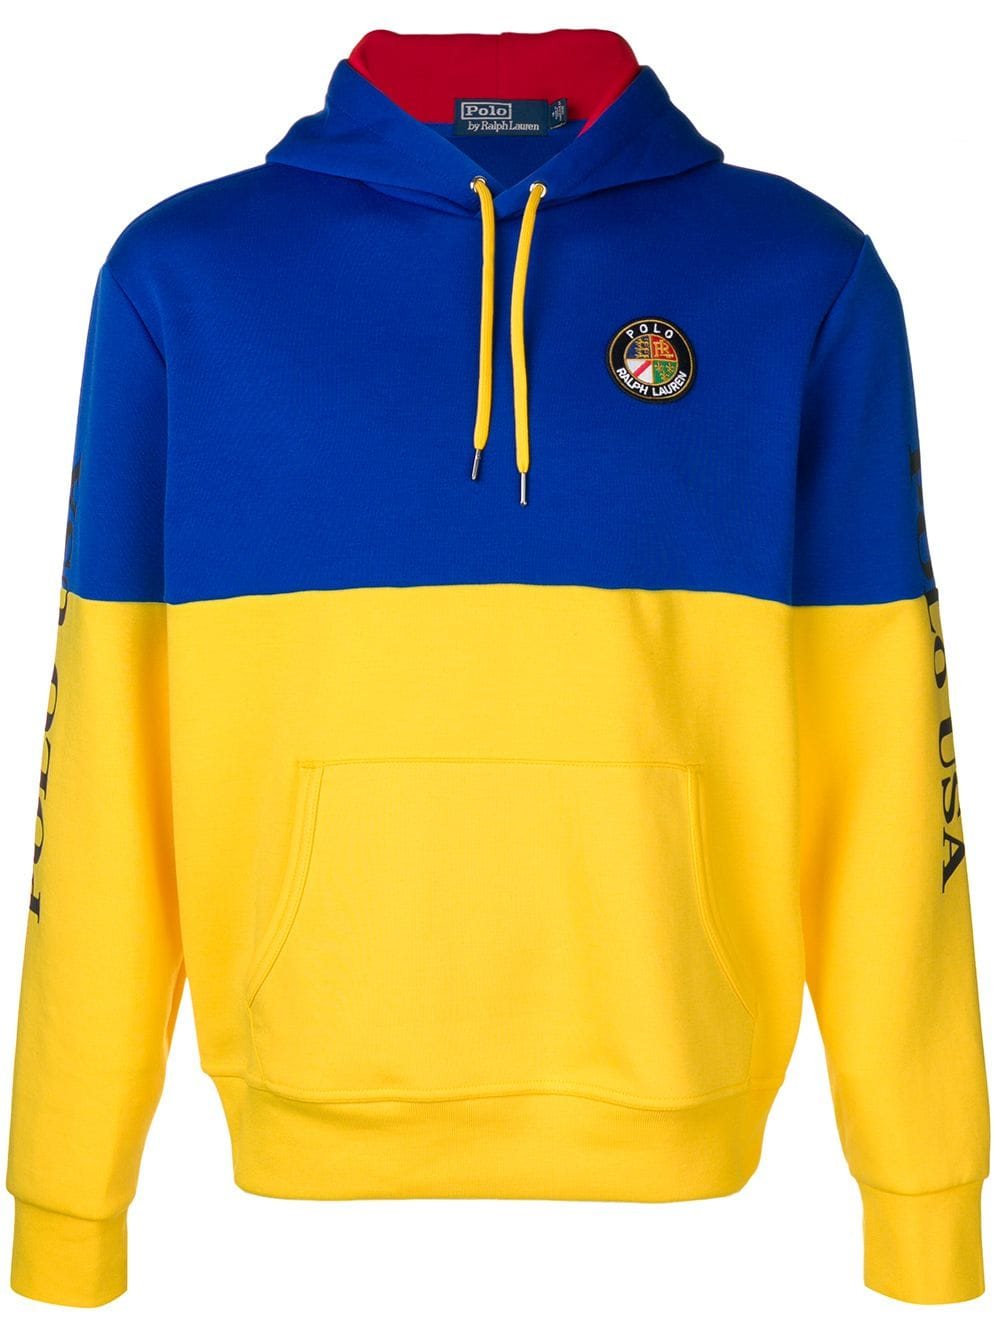 info for 12c5c 53e76 Dettagli su POLO RALPH LAUREN FELPA UOMO HOLIDAY LOGO HOODIE SWEATSHIRT  710719854